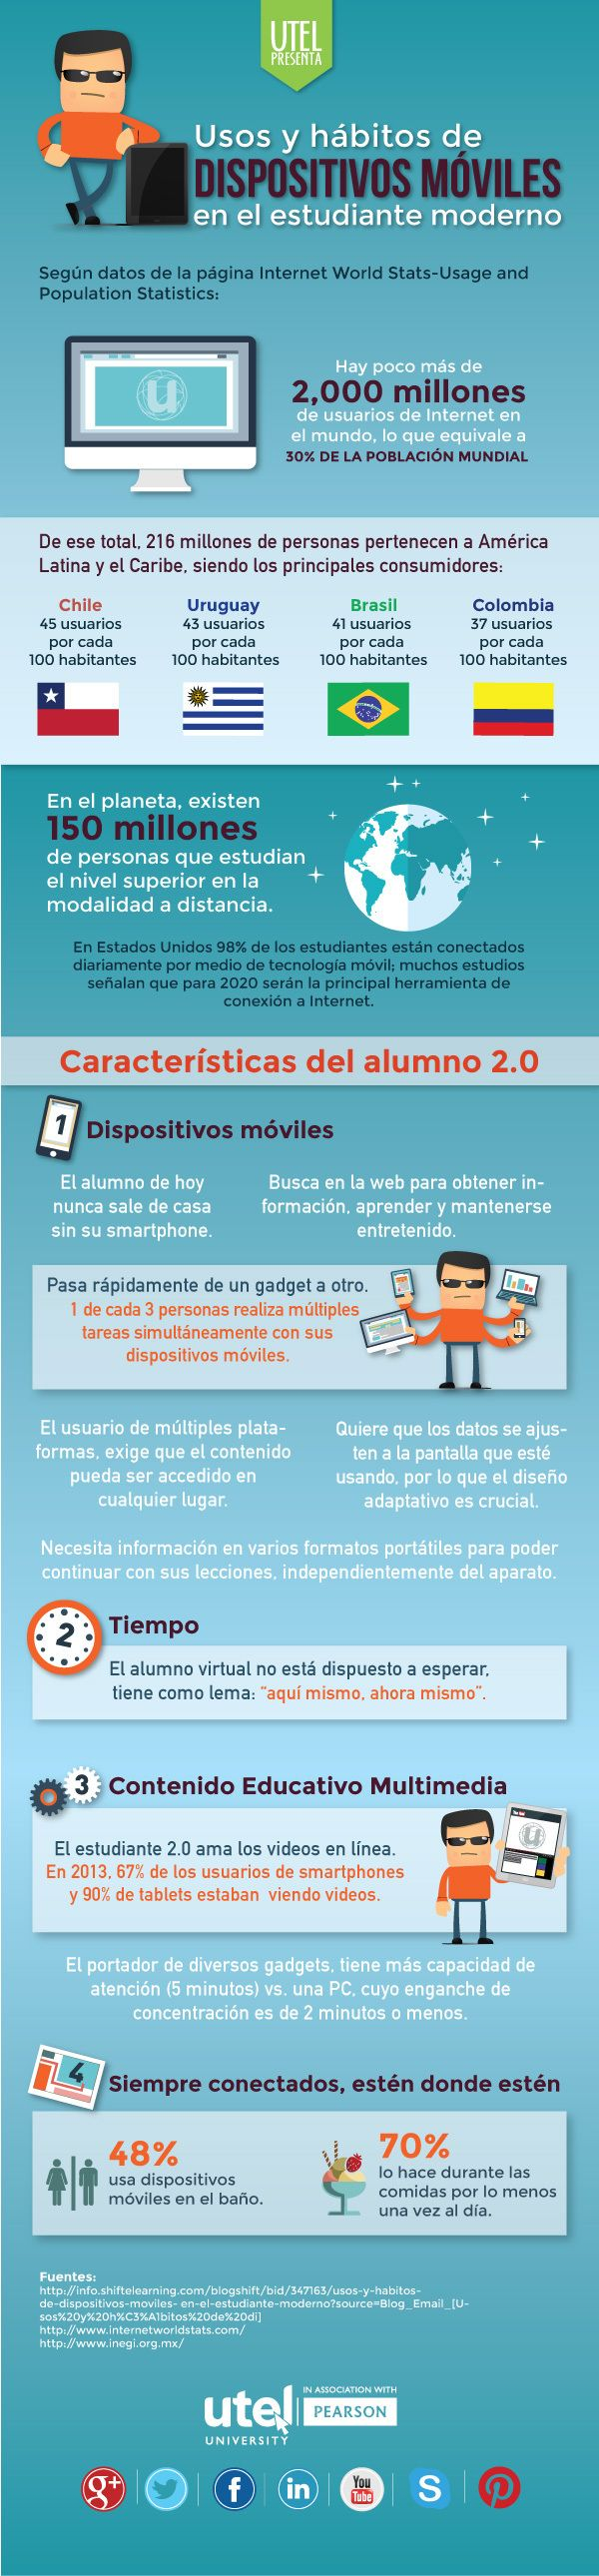 EstudiantesMovilesUsosHabitos-Infografía-BlogGesvin